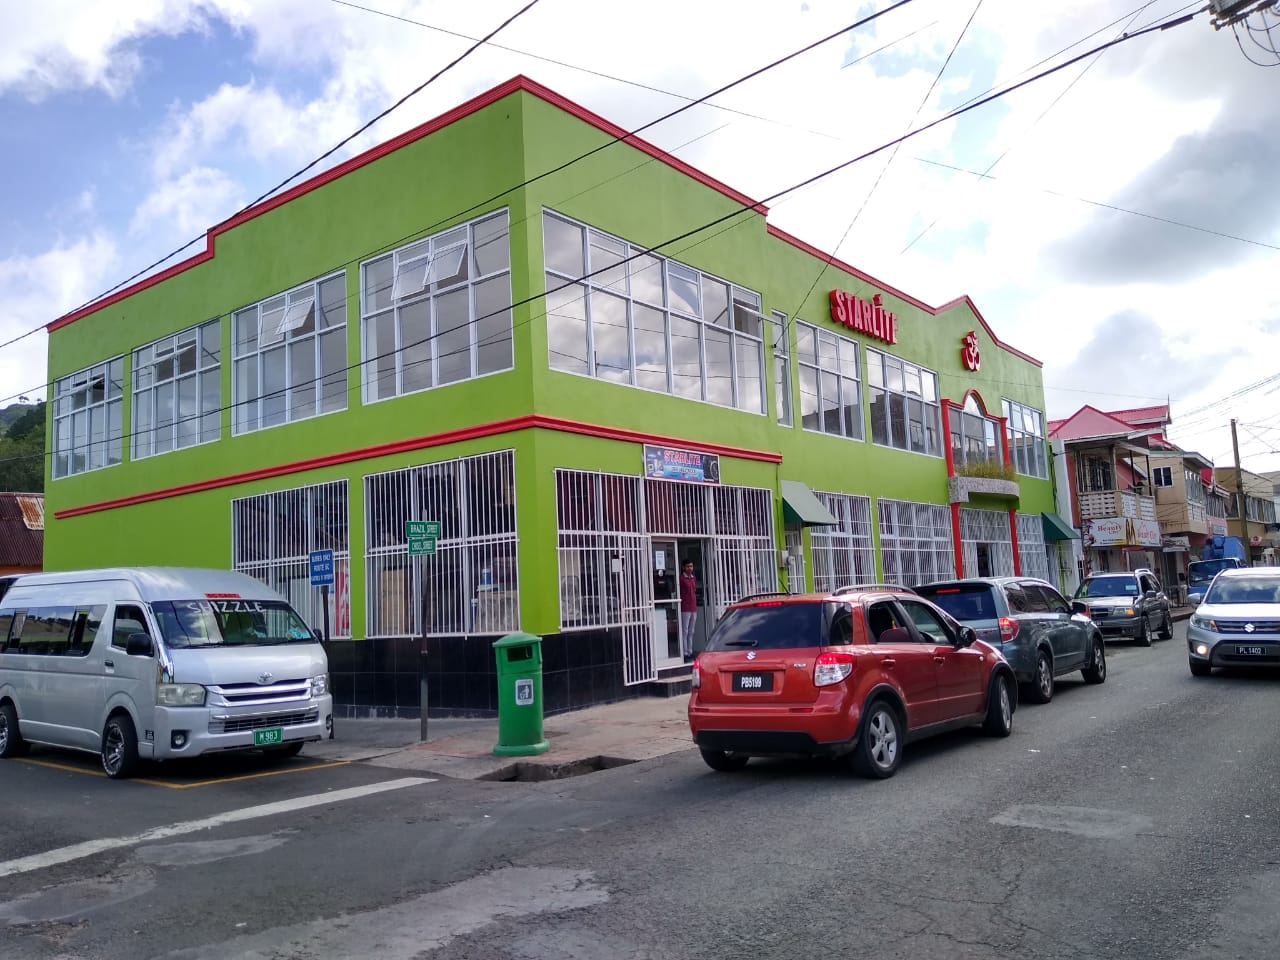 Commercial Rental Space In A Newly Built Building castries